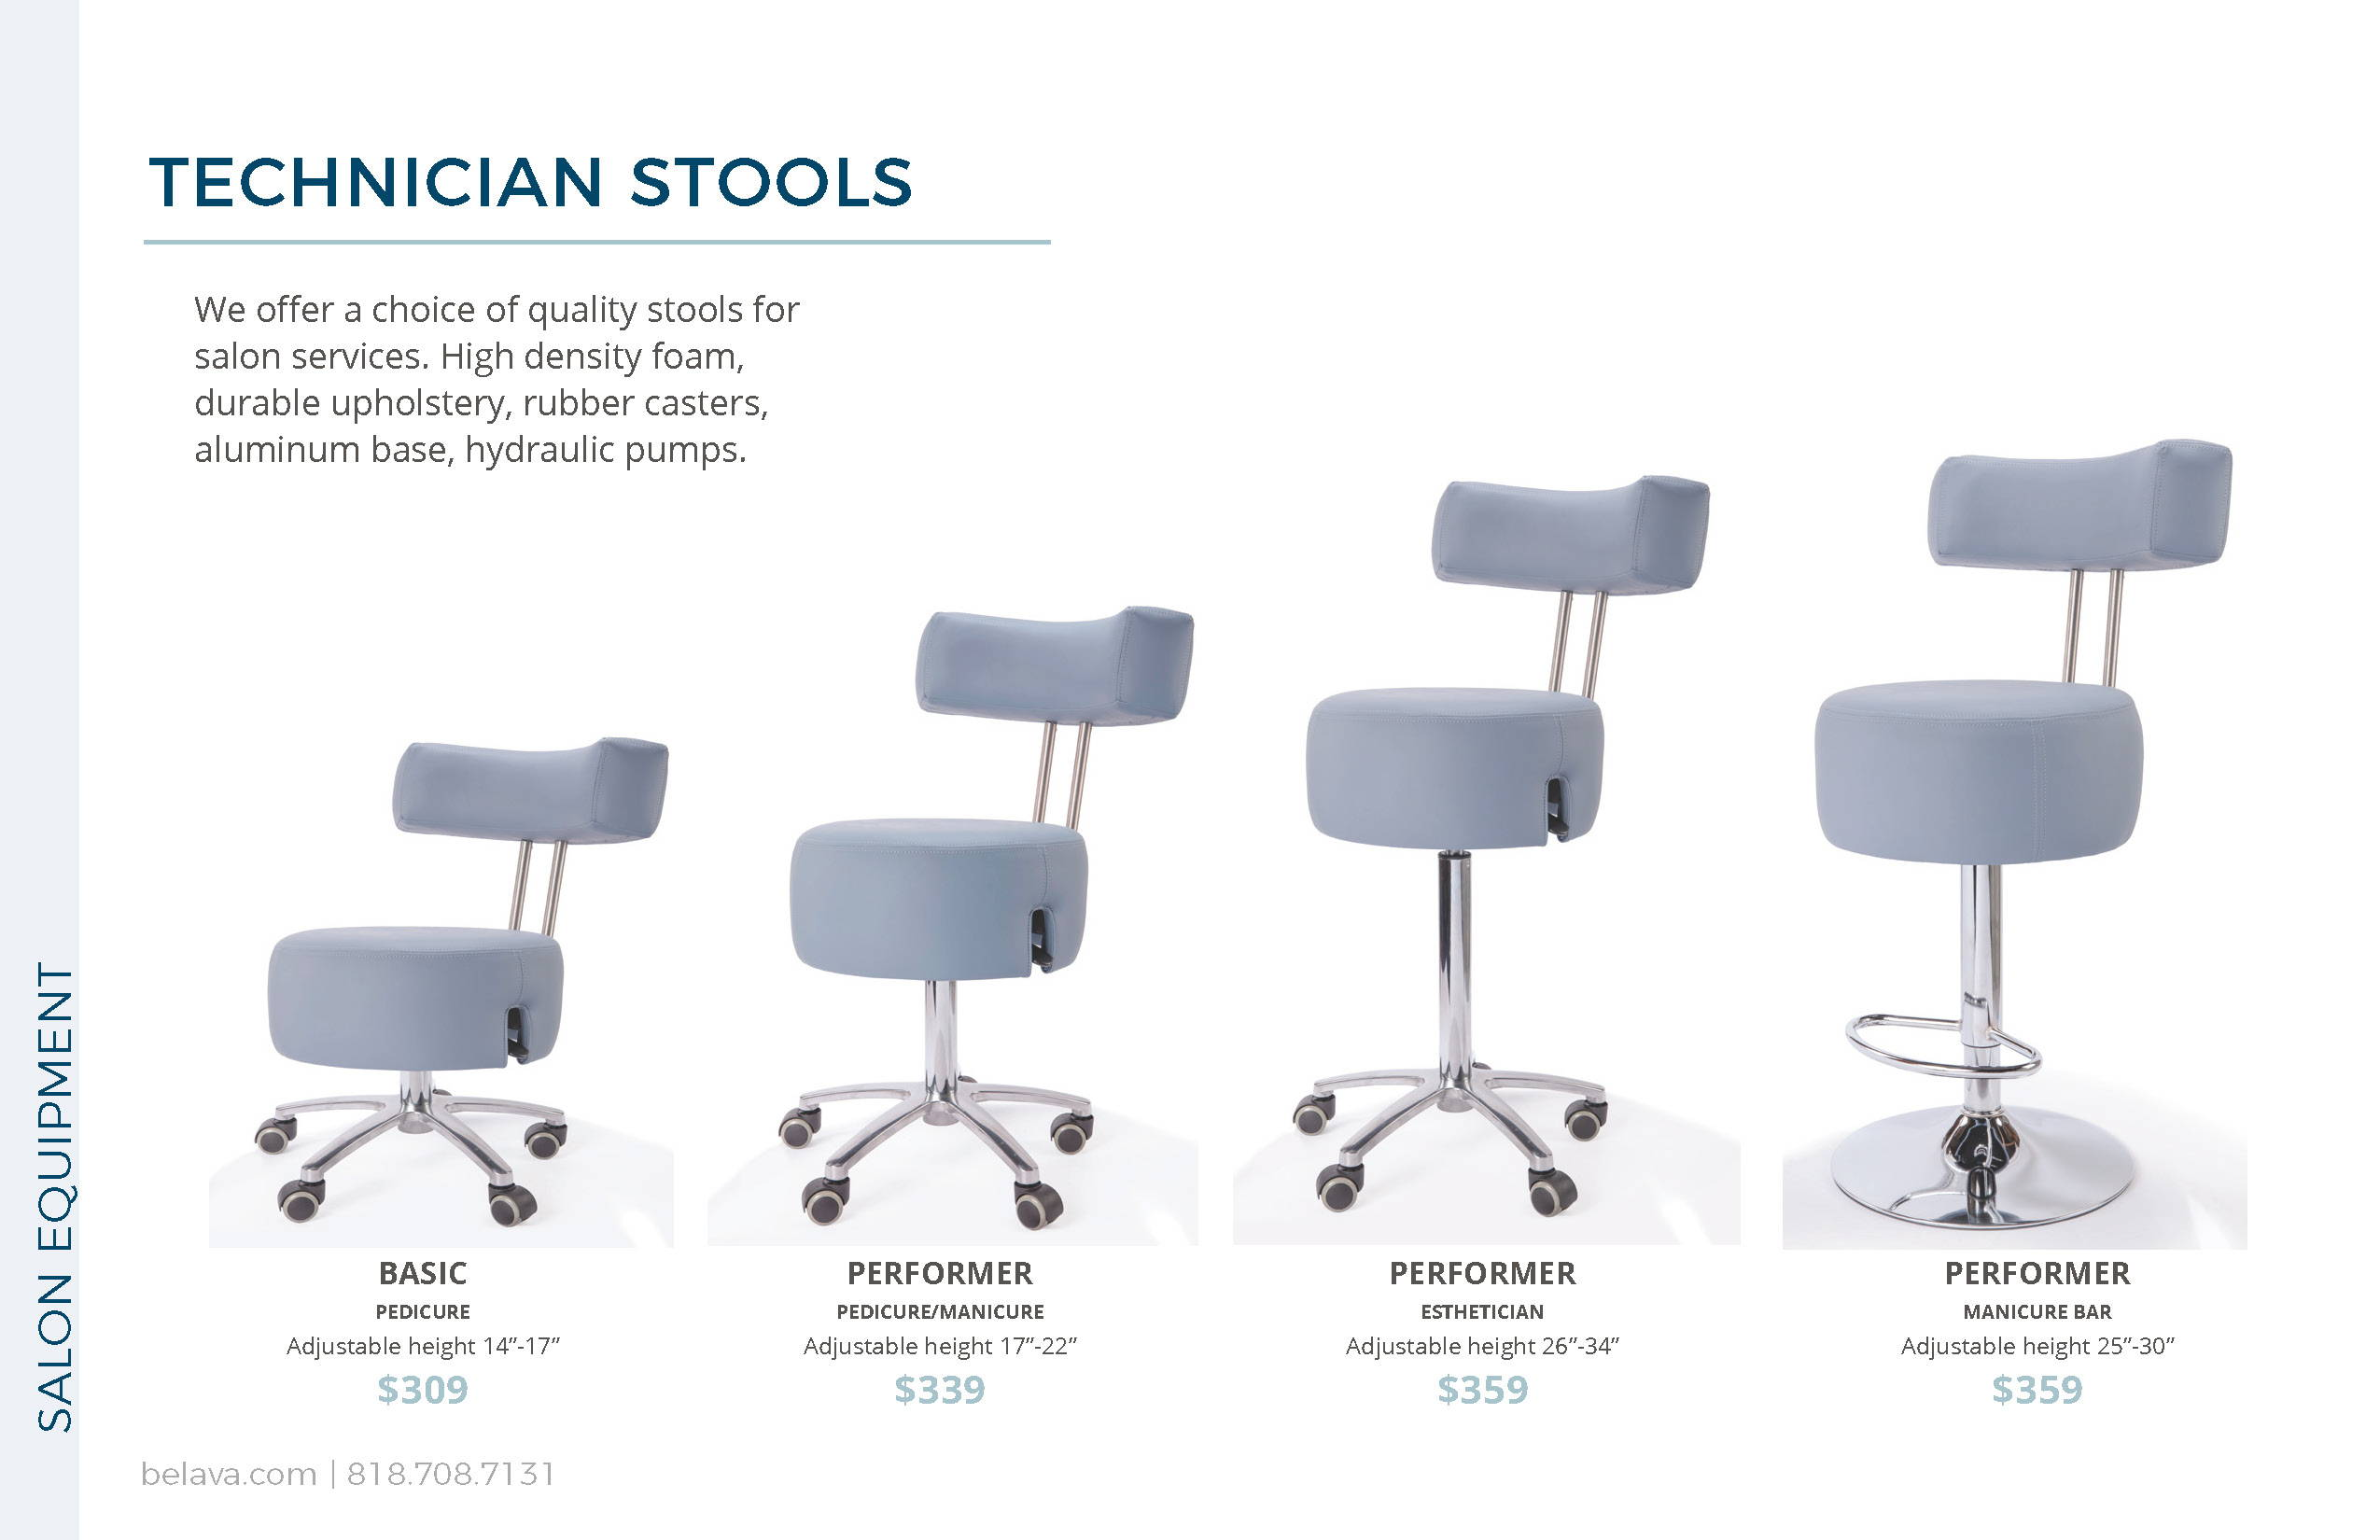 Nail Tech Stool Options by Belava